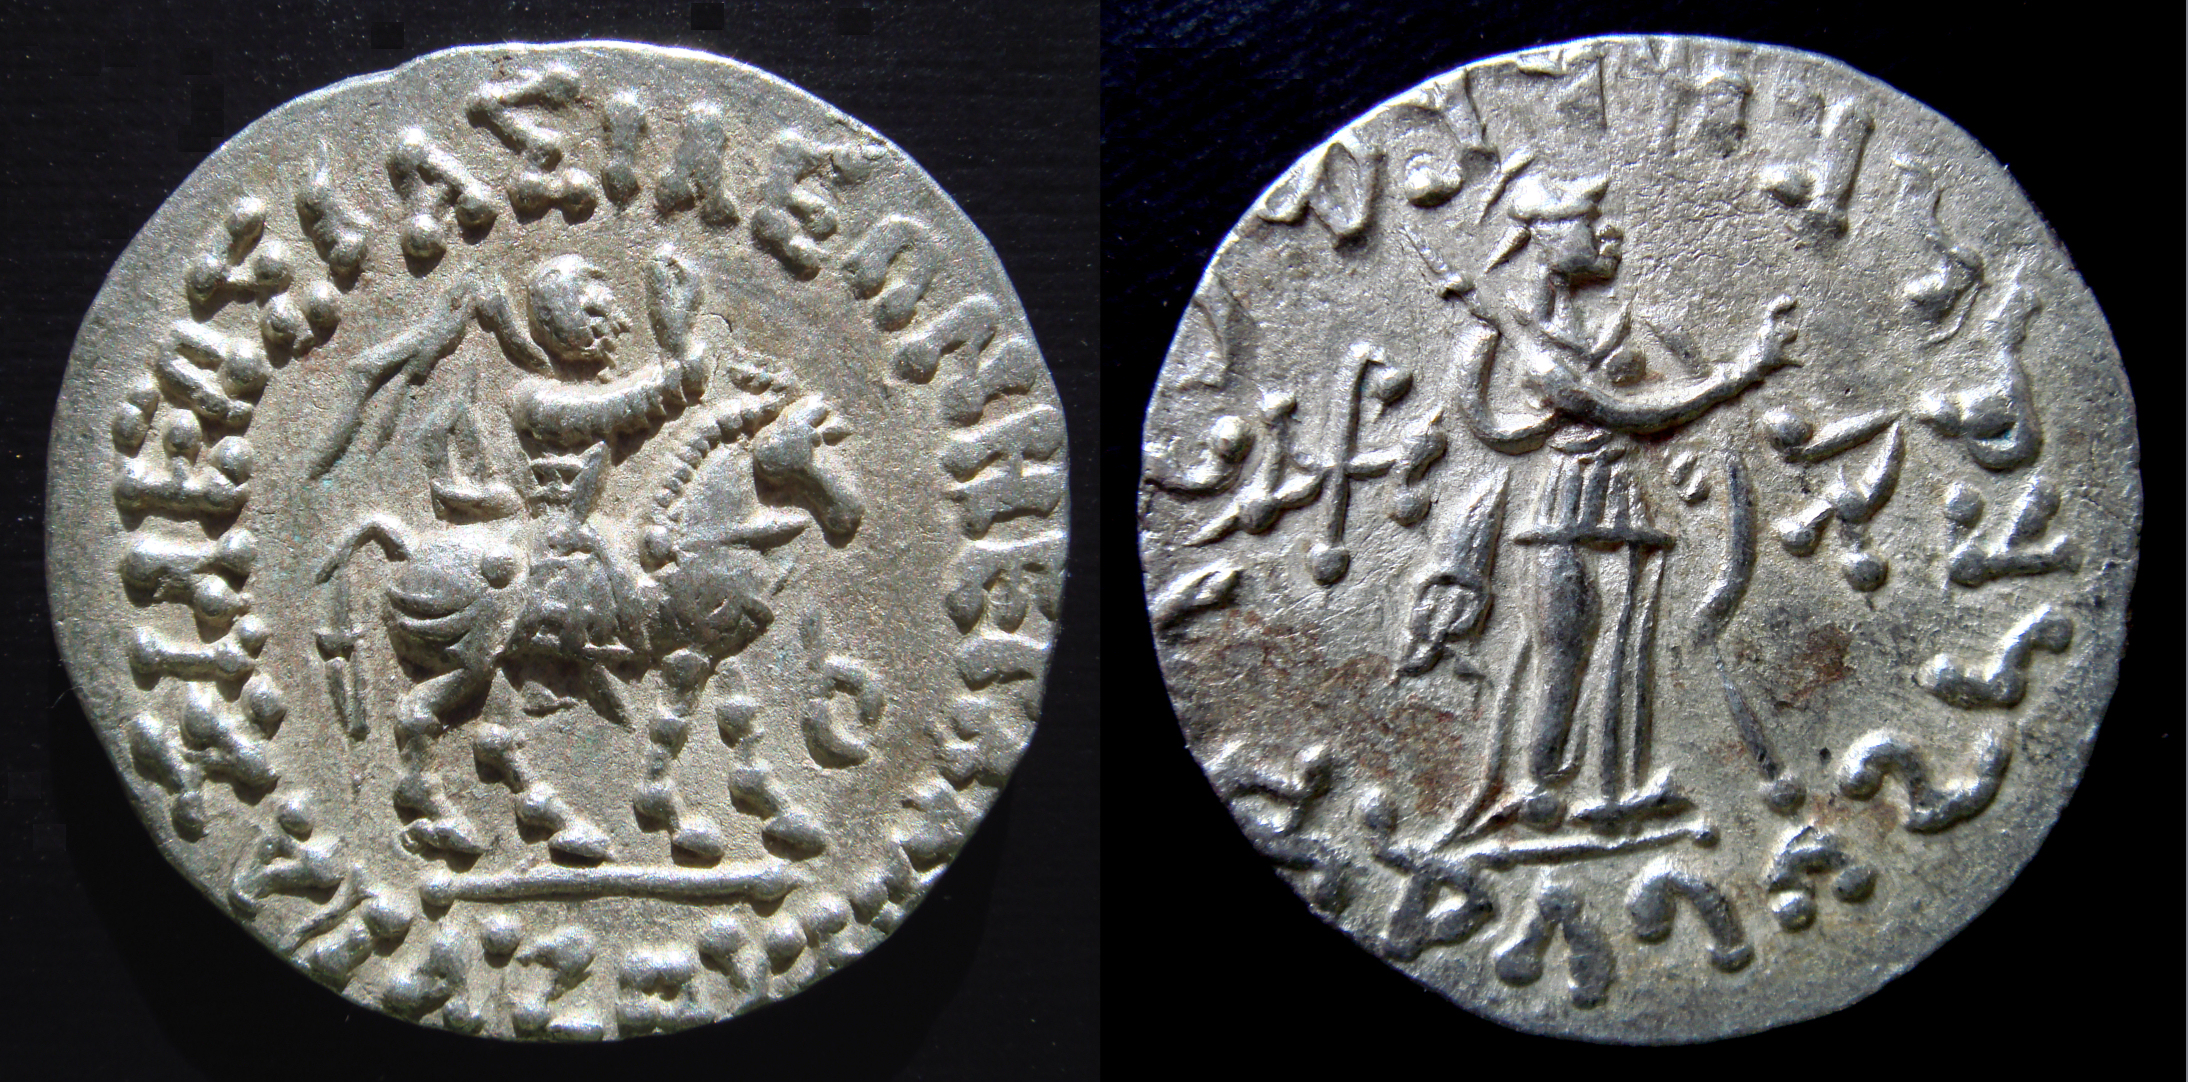 Azes II Coin from Wikipedia